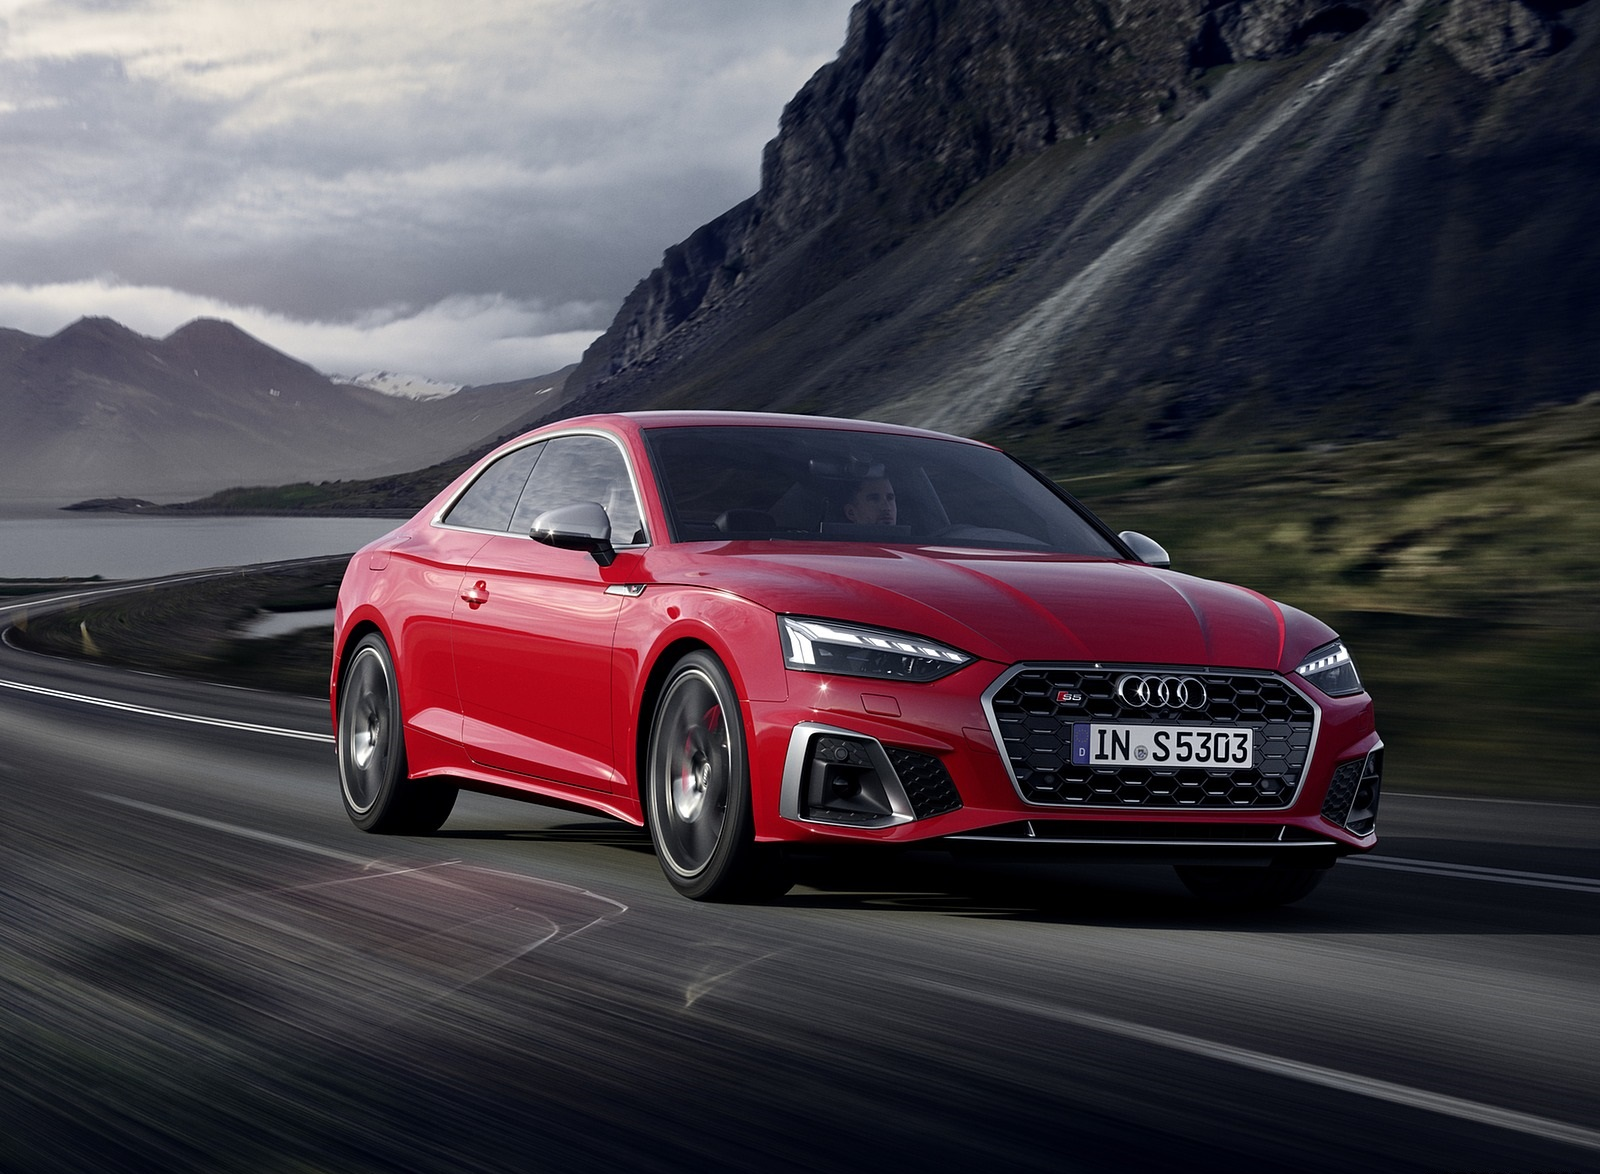 2020 Audi S5 Coupe TDI (Color: Tango Red) Front Three-Quarter Wallpapers (2)